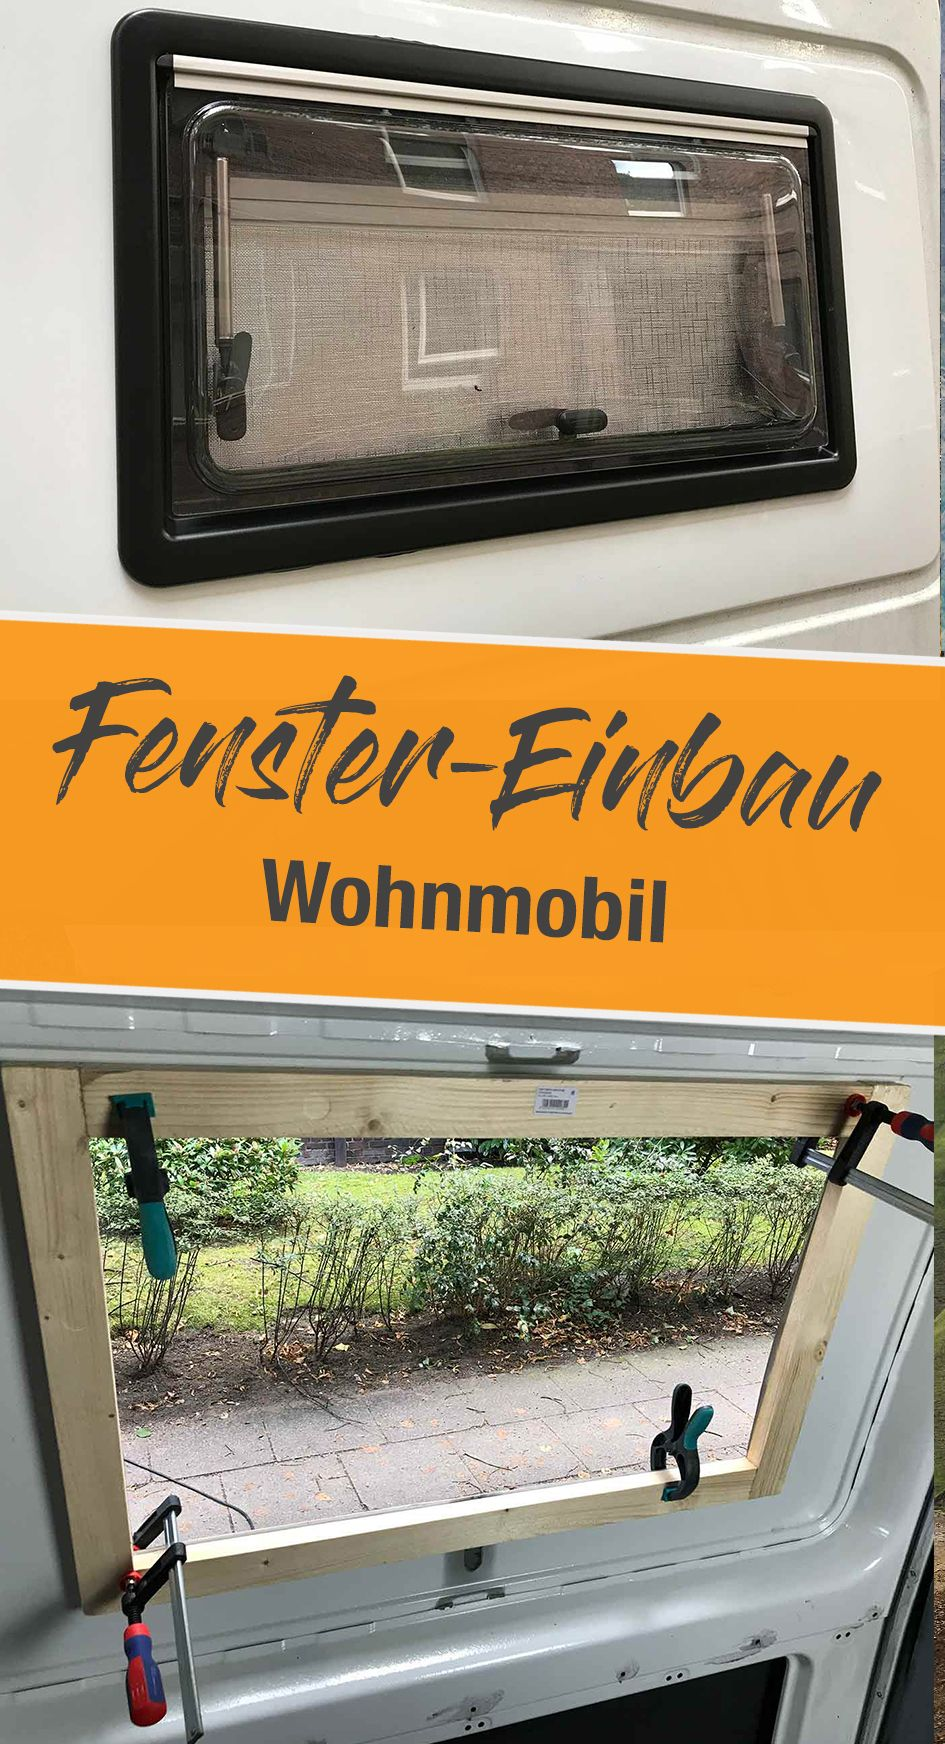 wohnmobil fenster einbauen einbauanleitung und kosten camper ausbau wohnmobil fenster. Black Bedroom Furniture Sets. Home Design Ideas